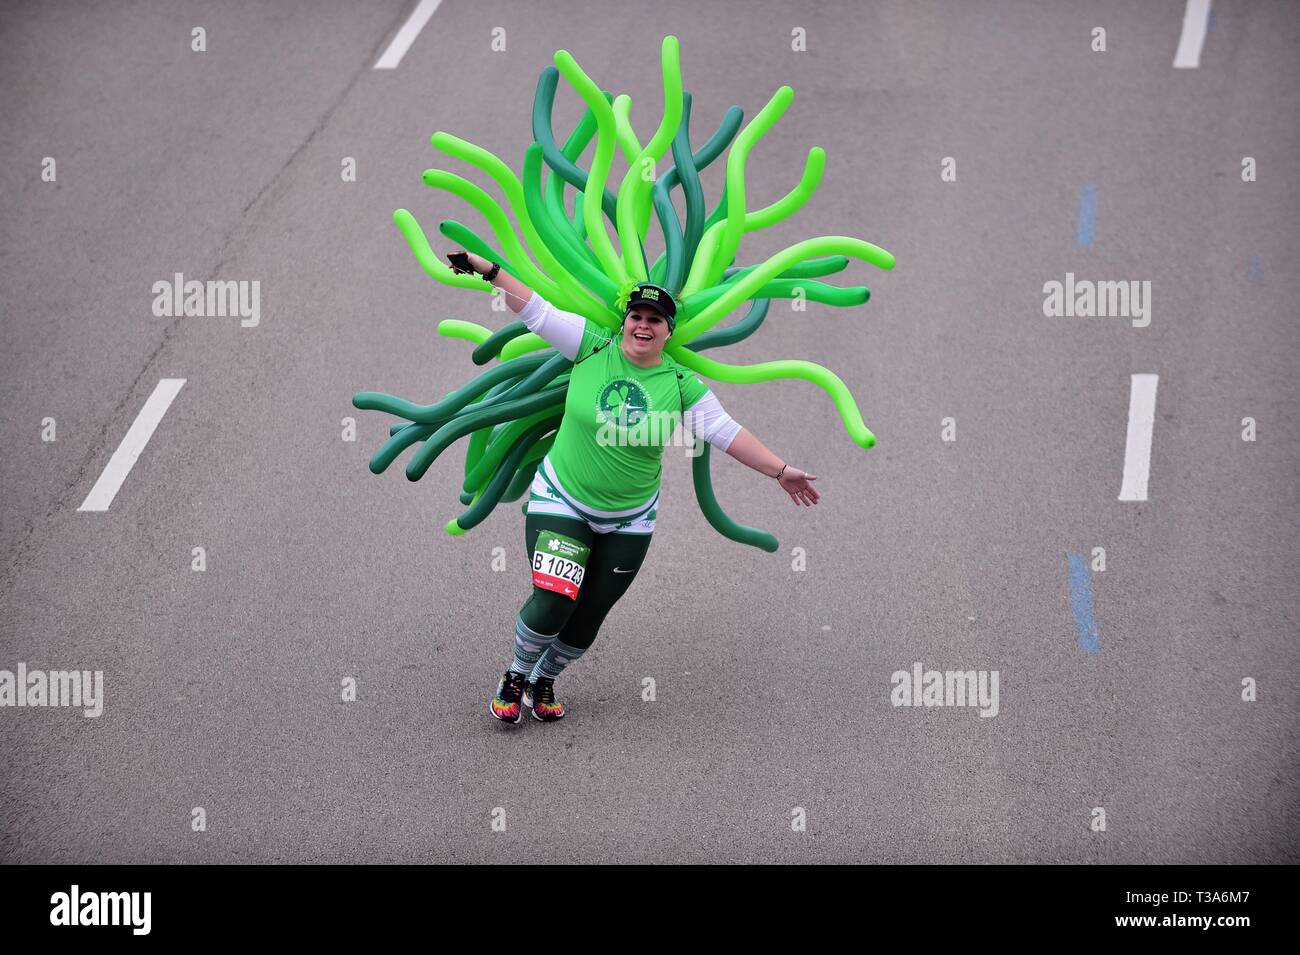 Chicago, Illinois, USA. Colorfully attired runner on display during the 2019 Shamrock Shuffle race in Chicago. - Stock Image